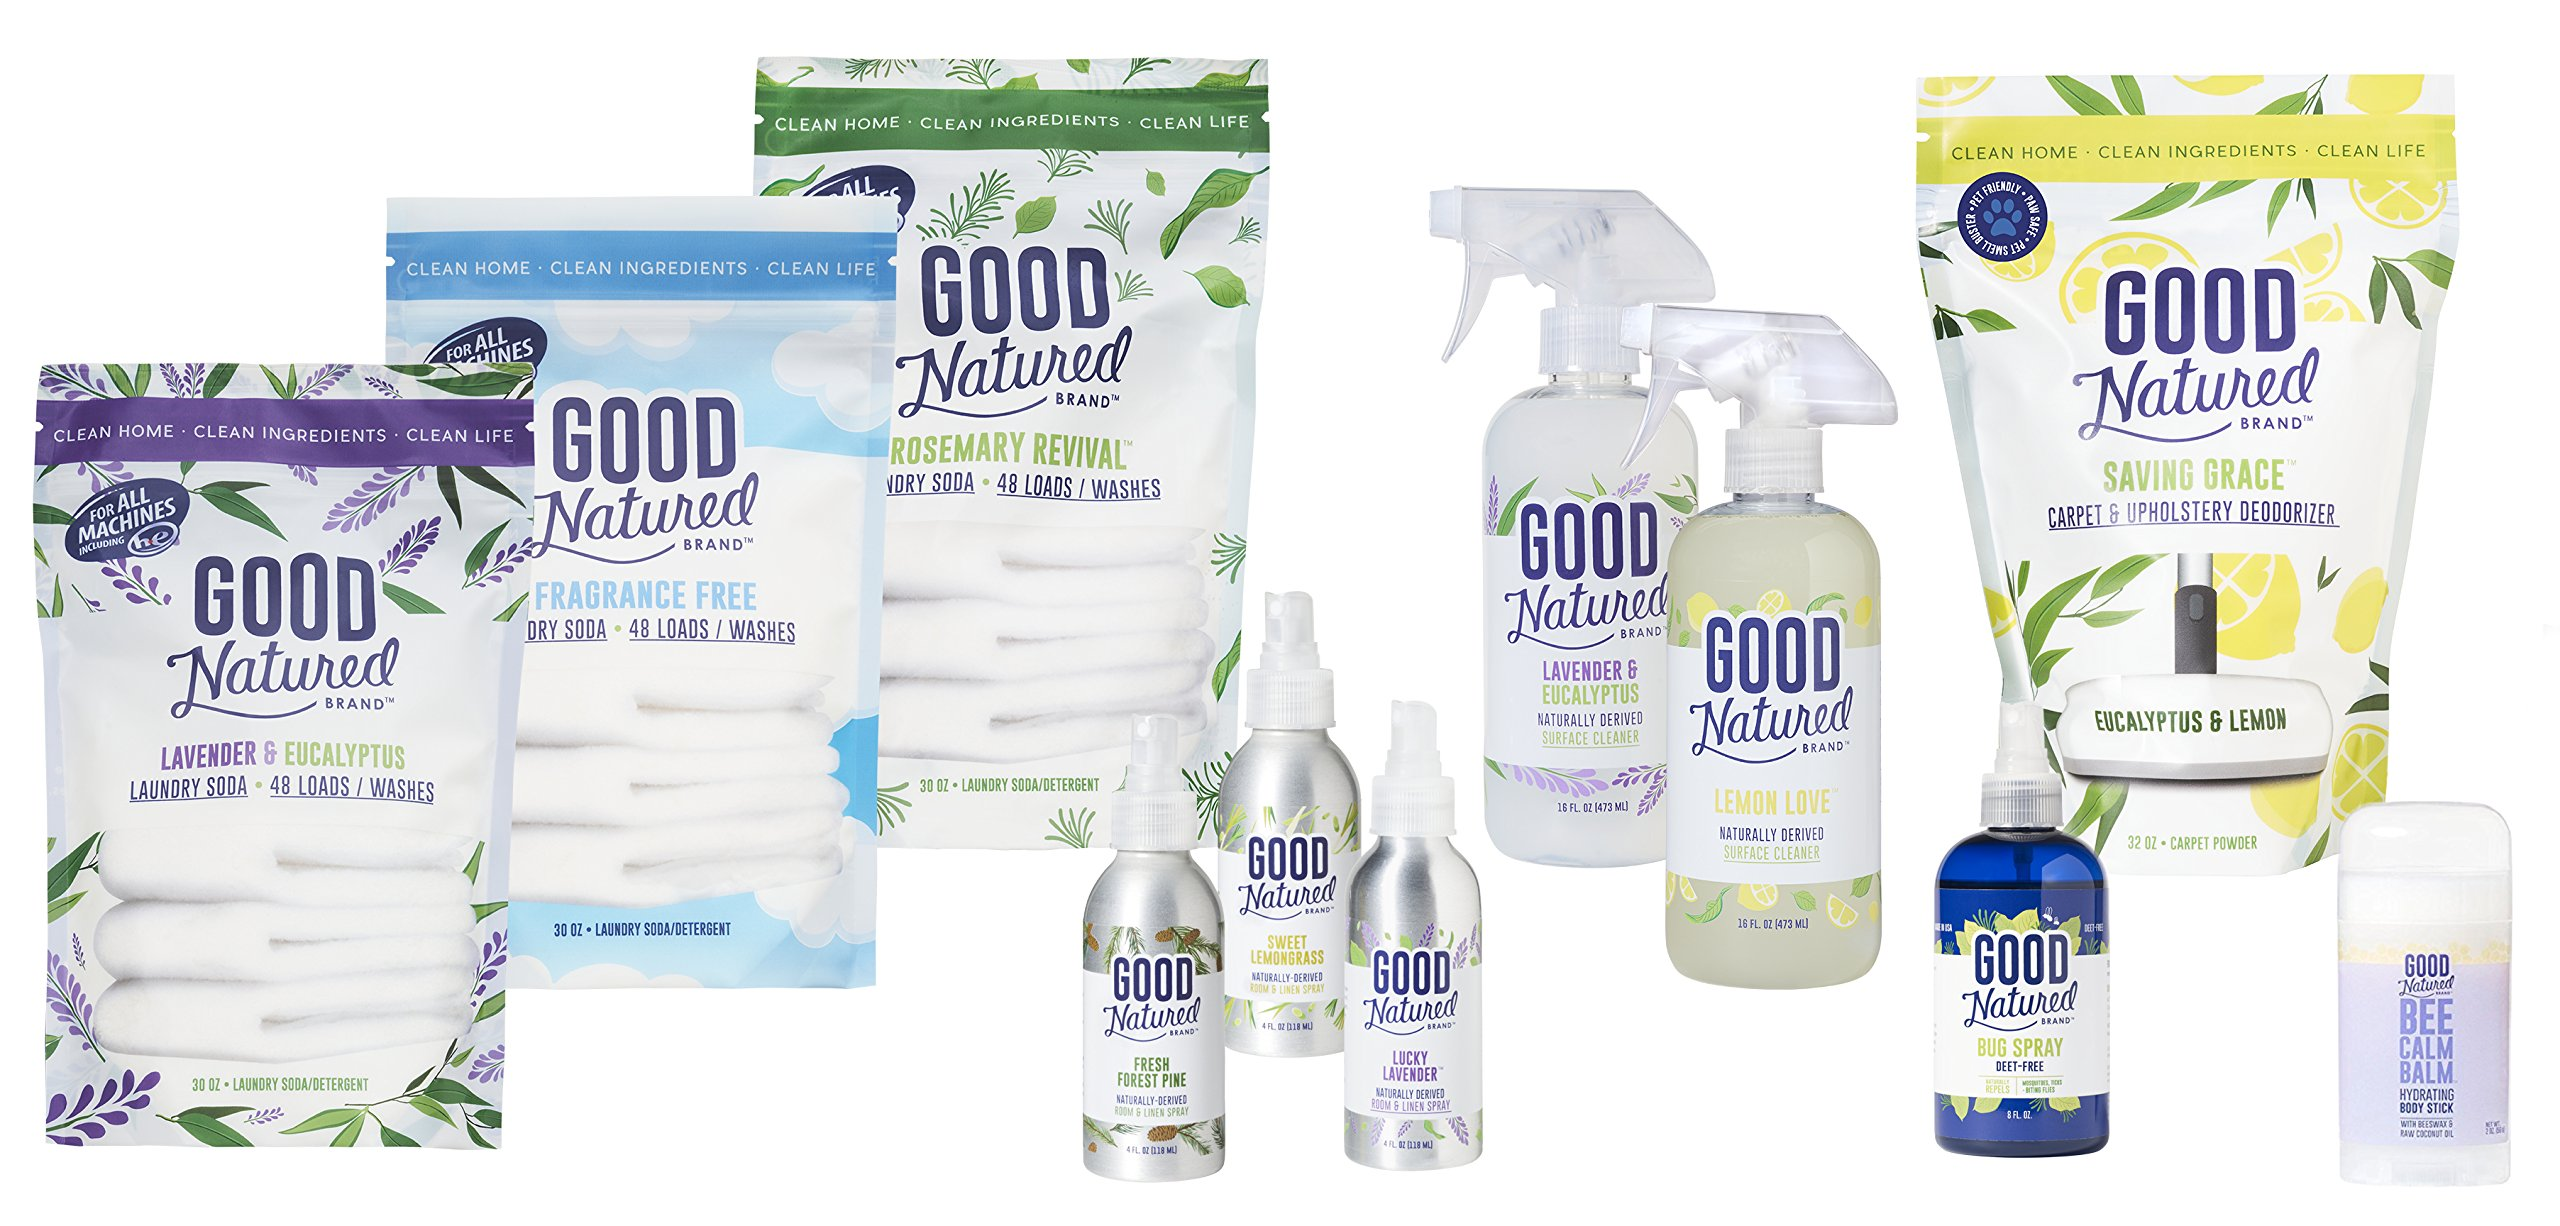 Good Natured Brand The Best All-Natural Pet-Friendly Eco-friendly Saving Grace Carpet & Upholstery Deodorizer, 32 oz. by Good Natured Brand (Image #1)